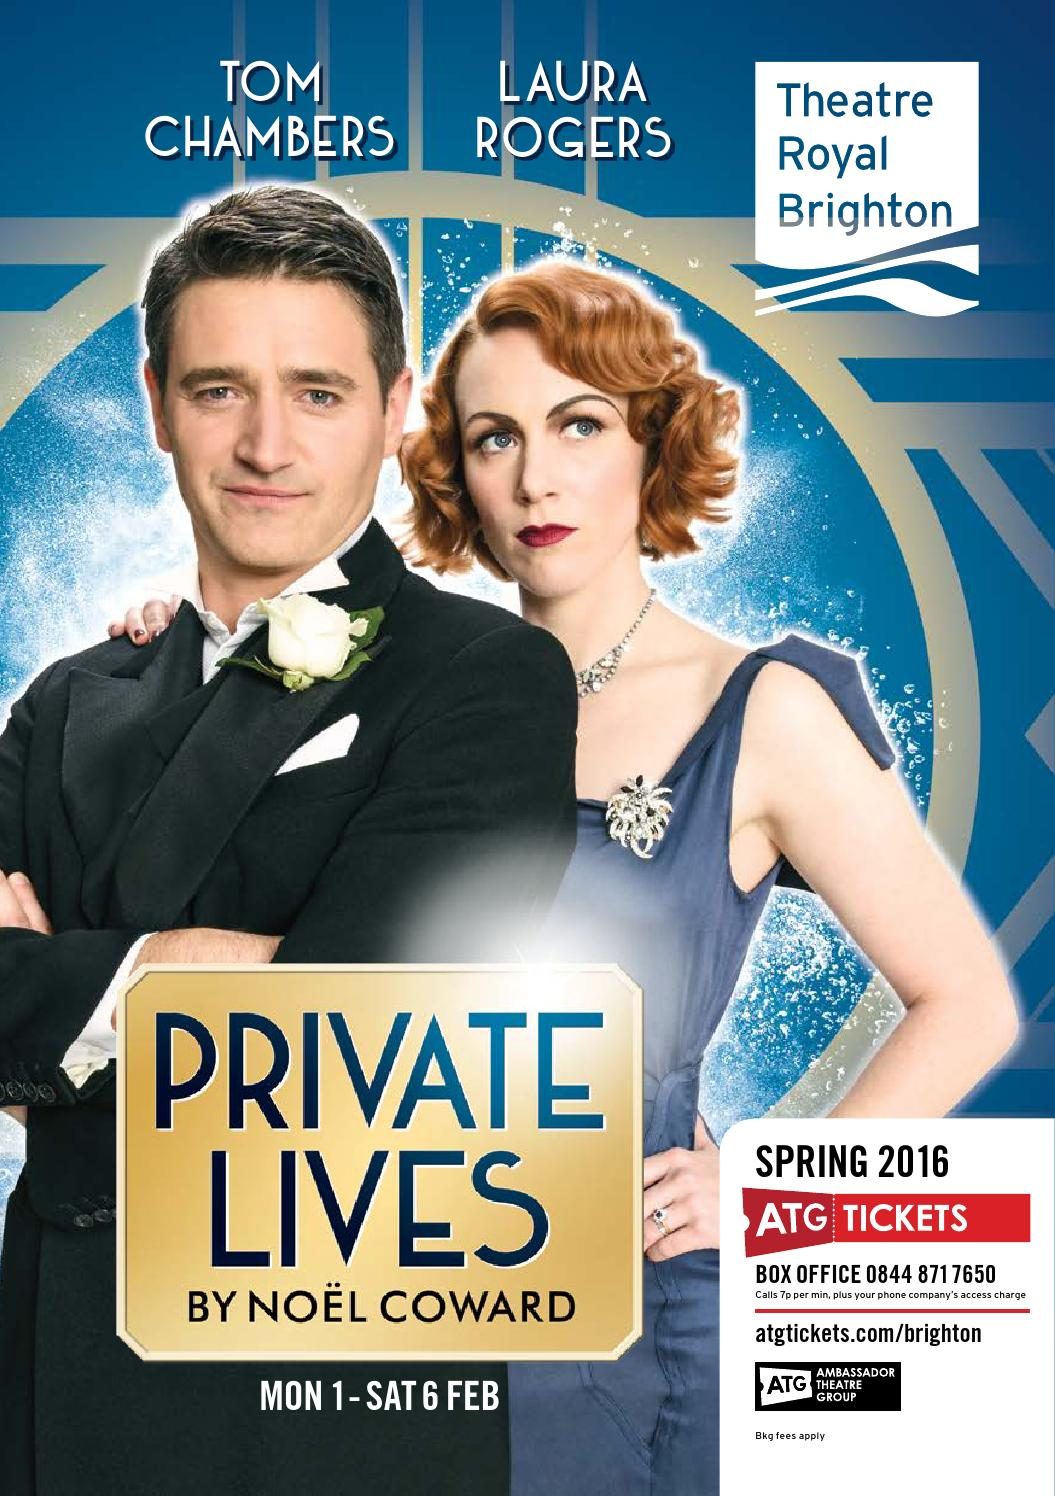 Theatre Royal Brighton - Spring Brochure 2016 - ATG Tickets by ATG ...